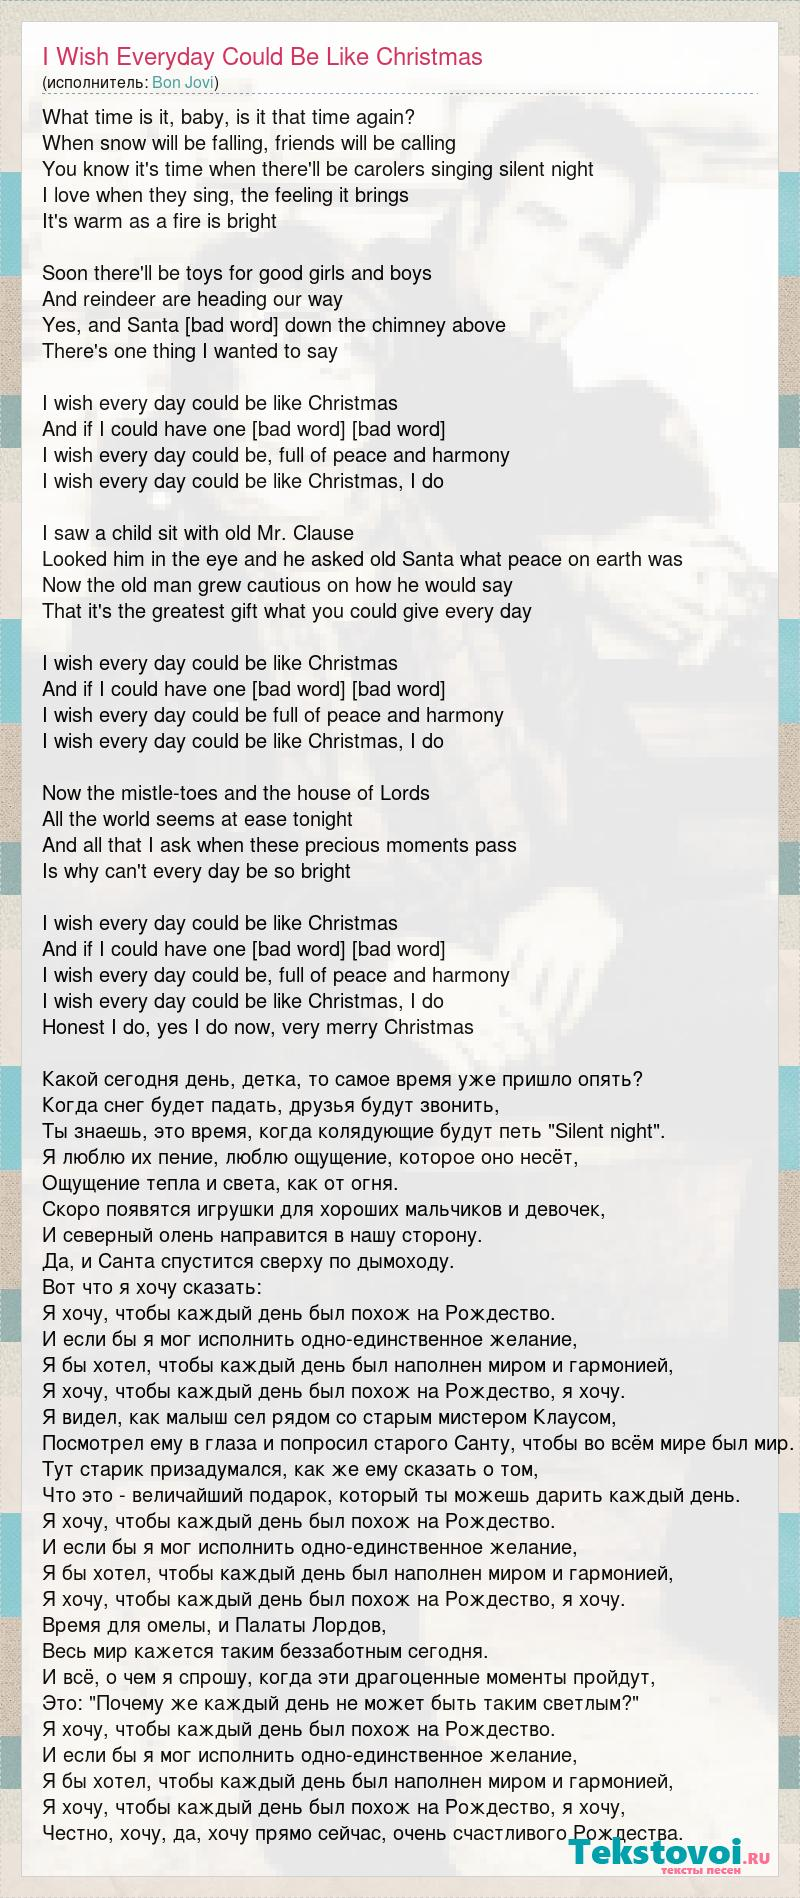 Bon Jovi: I Wish Everyday Could Be Like Christmas слова песни